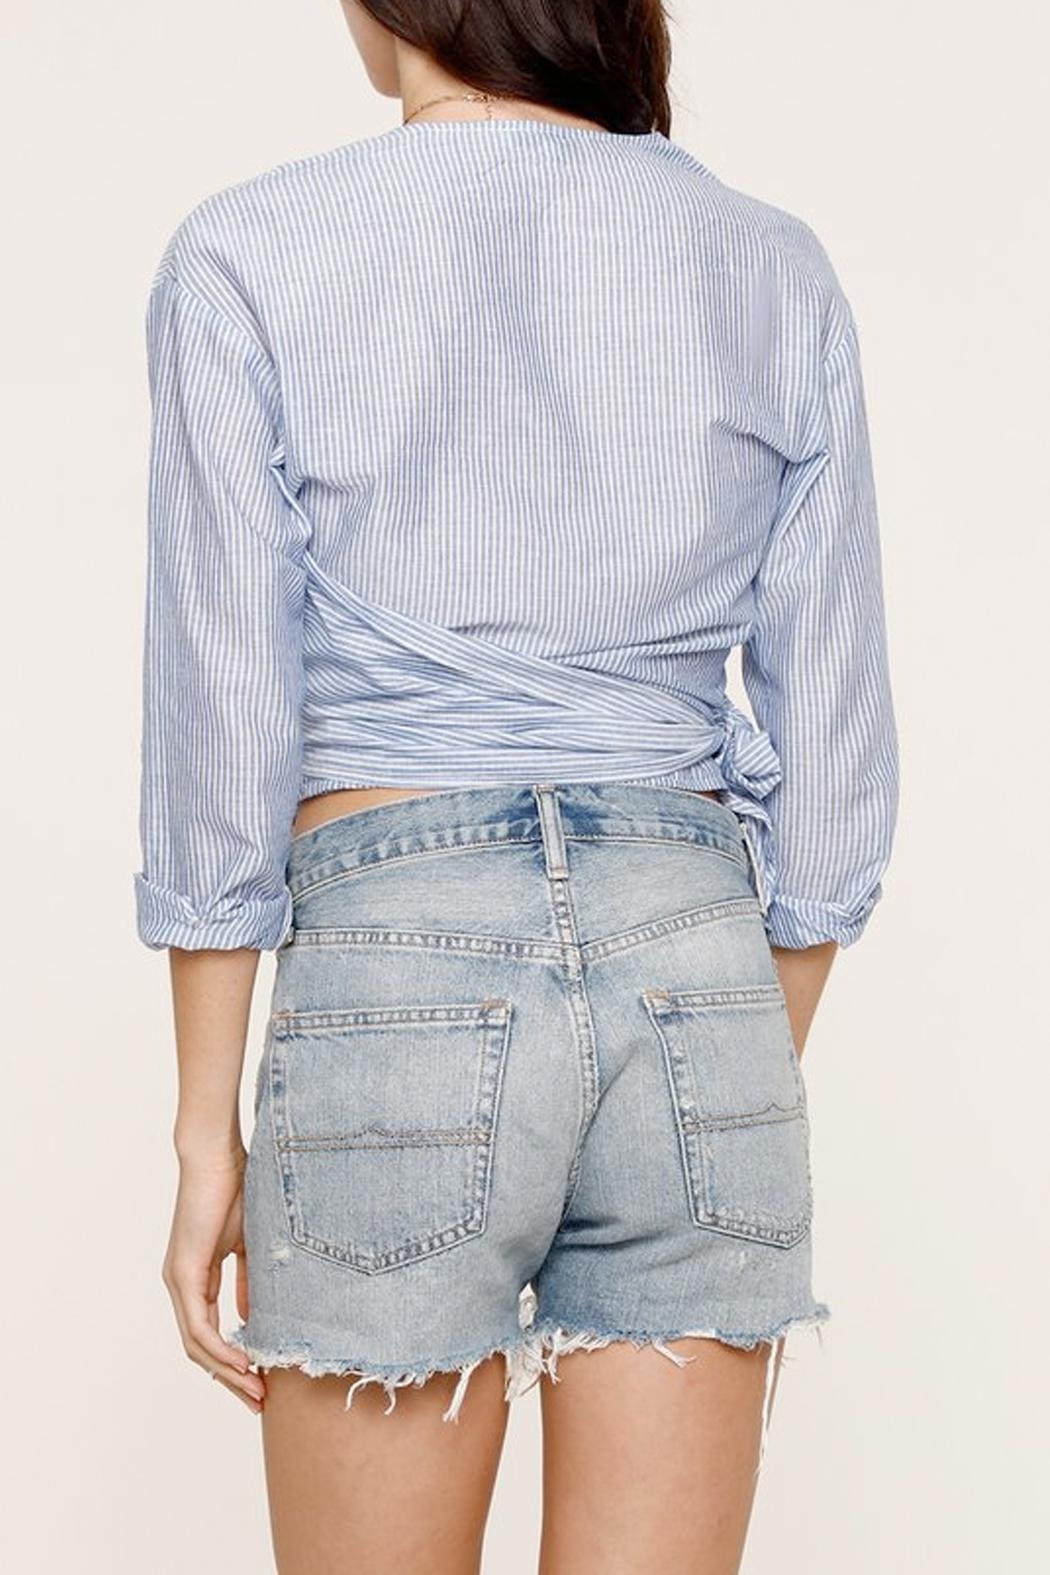 Heartloom Michi Wrap Top - Side Cropped Image